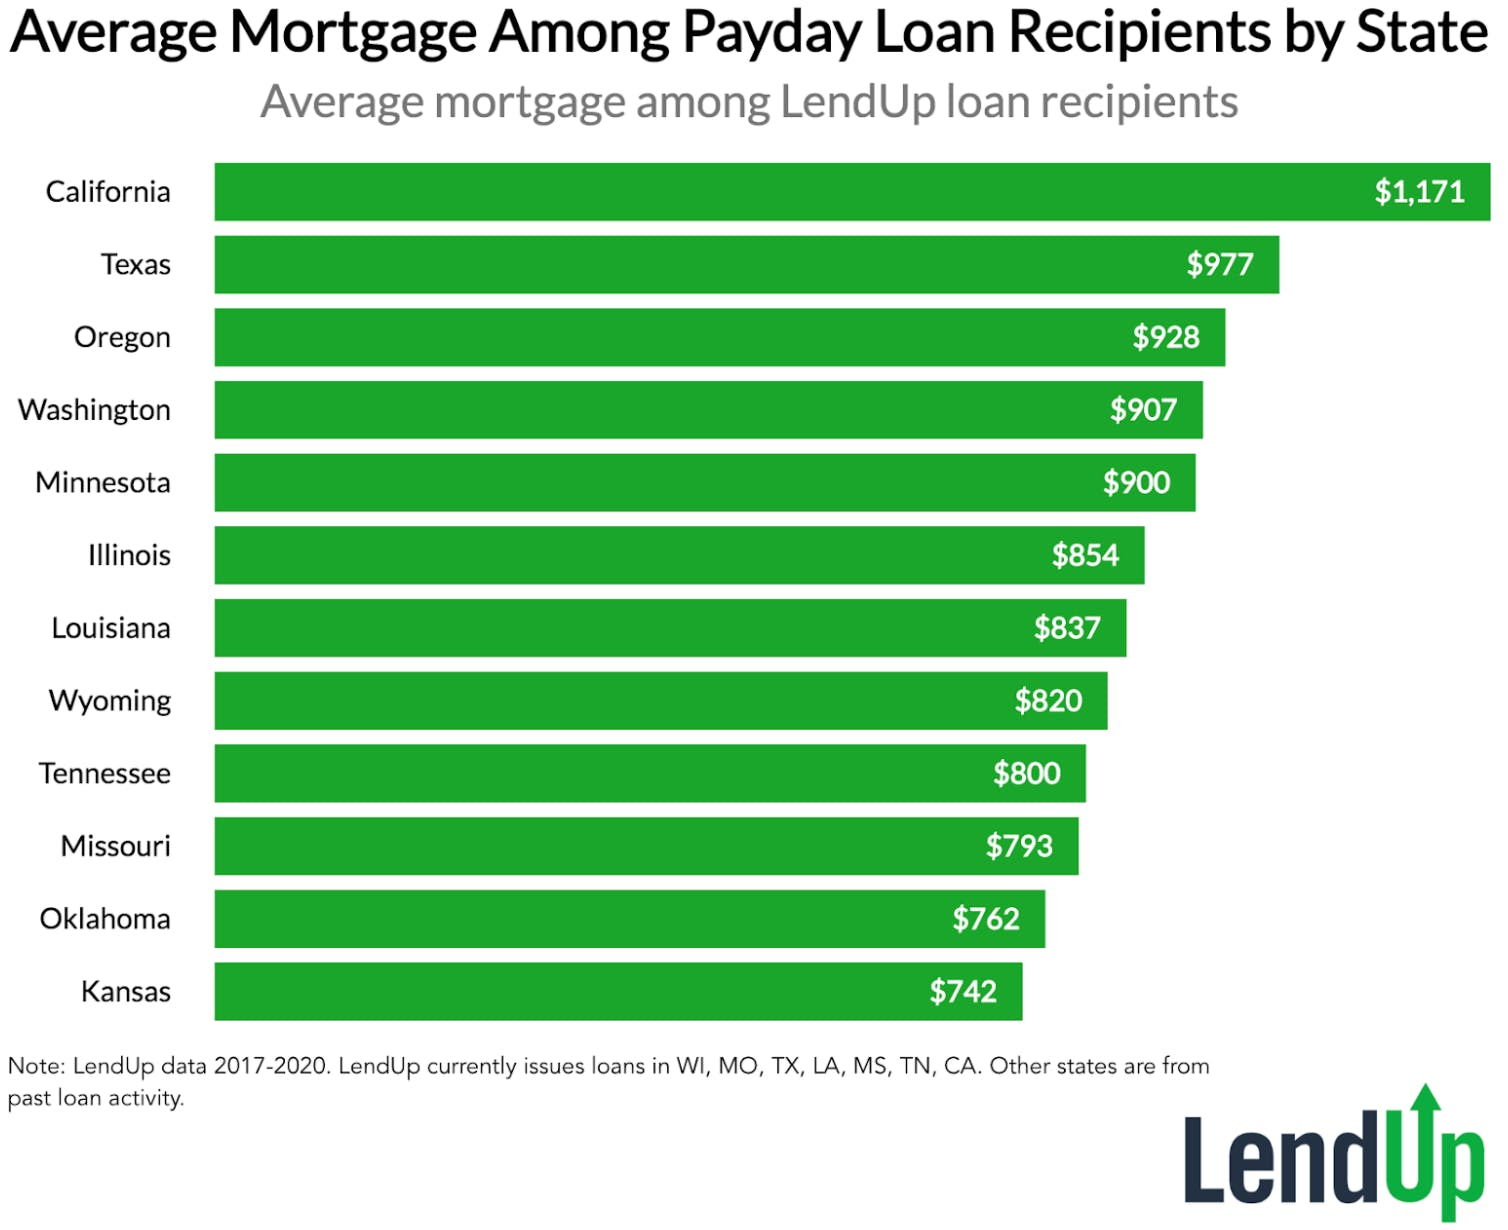 Average Mortgage Among Payday Loan Recipients by State